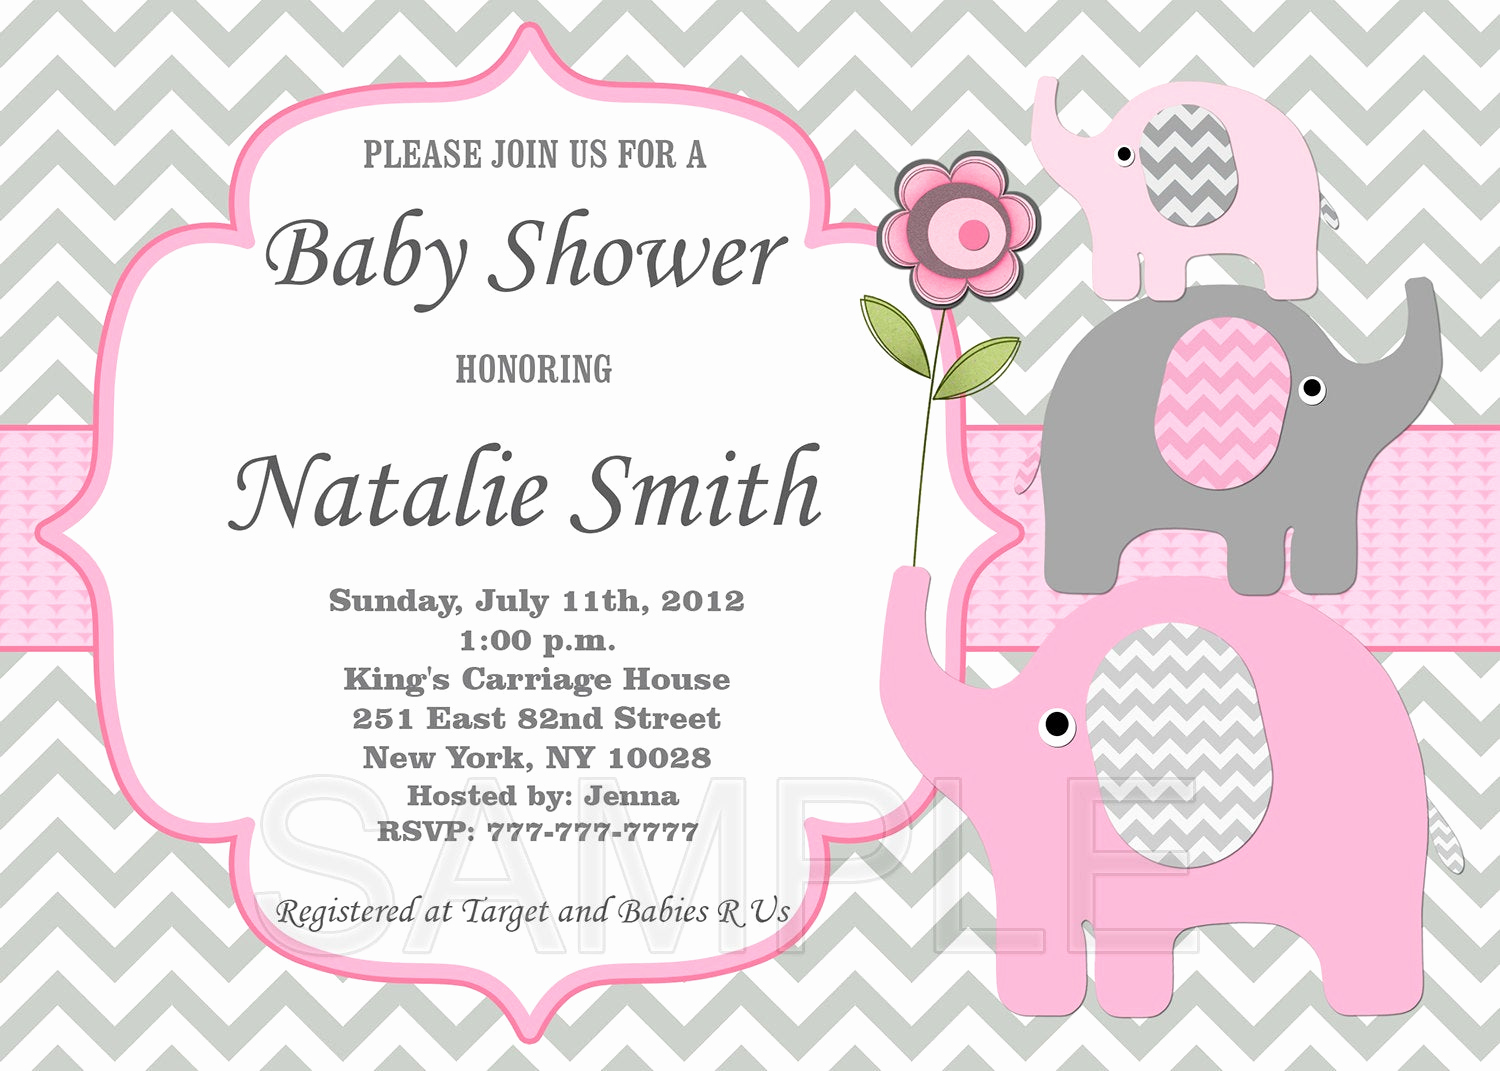 Elephant Baby Shower Invitation Elegant Girl Baby Shower Invitation Elephant Baby Shower by Diymyparty